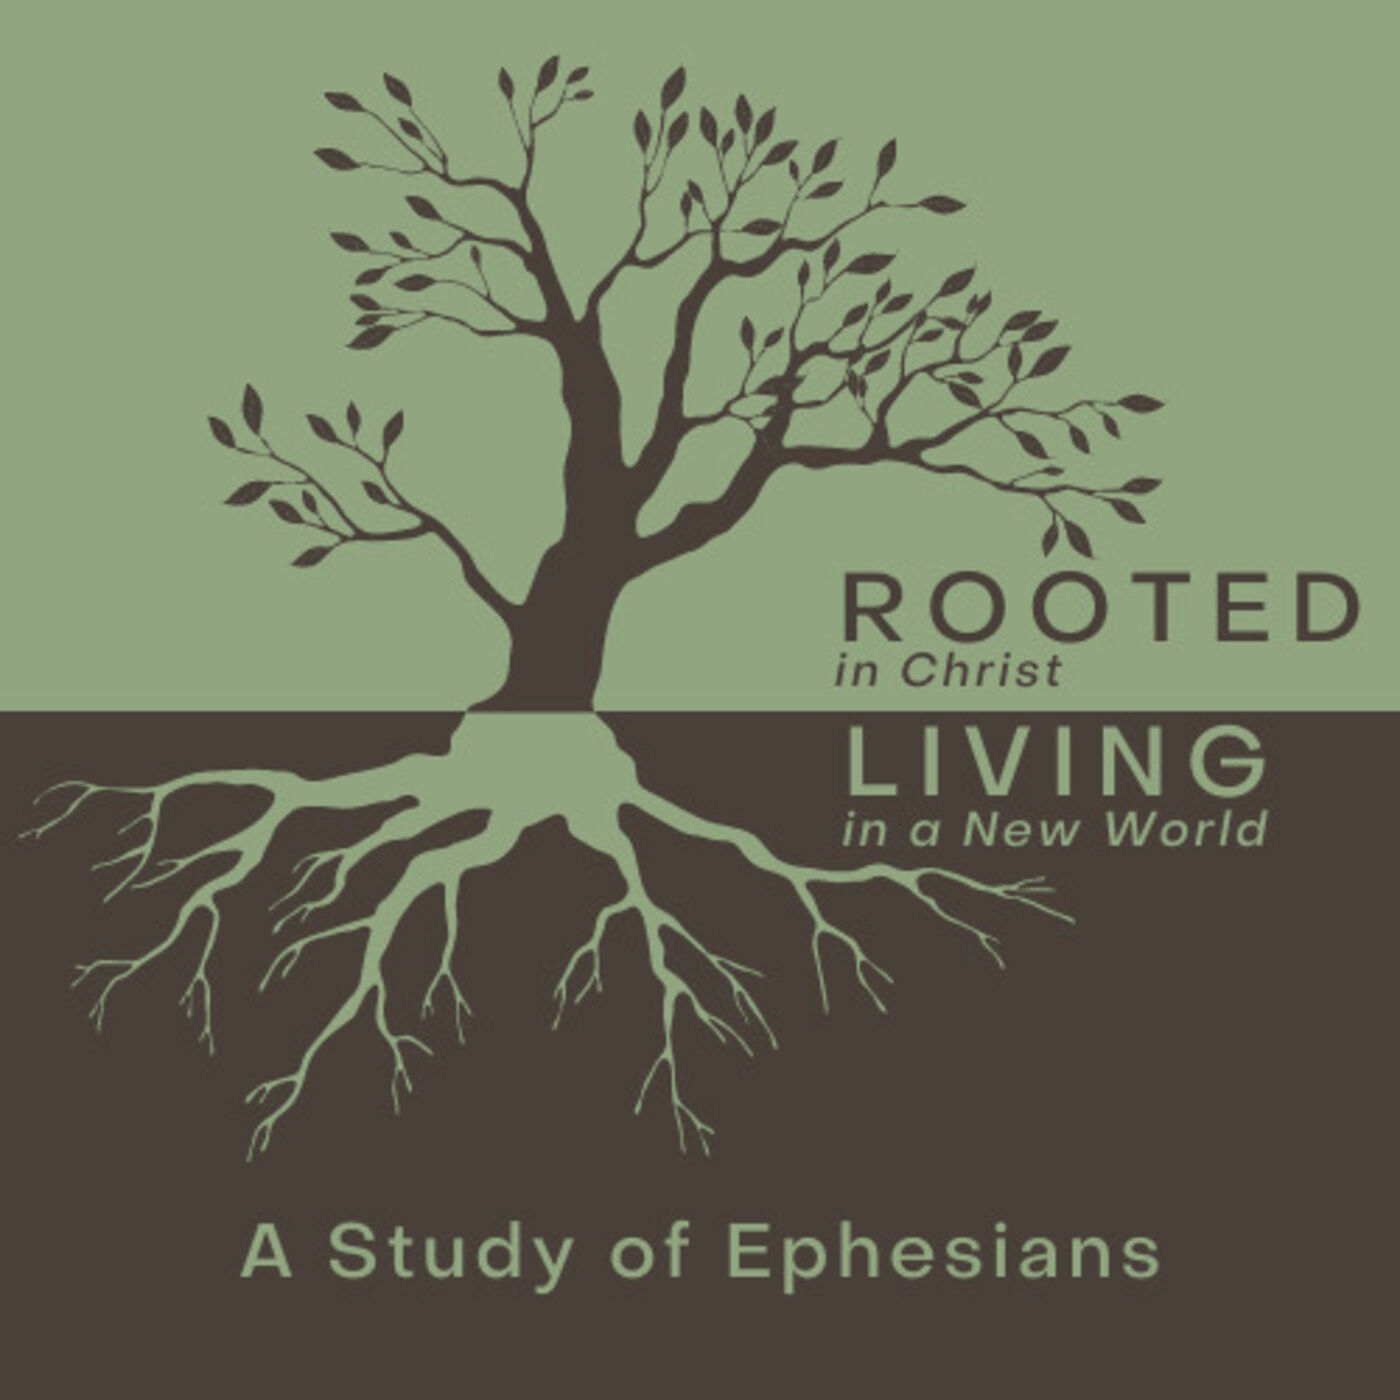 Rooted in Christ, Living in a New World - The Church as Imitators of God